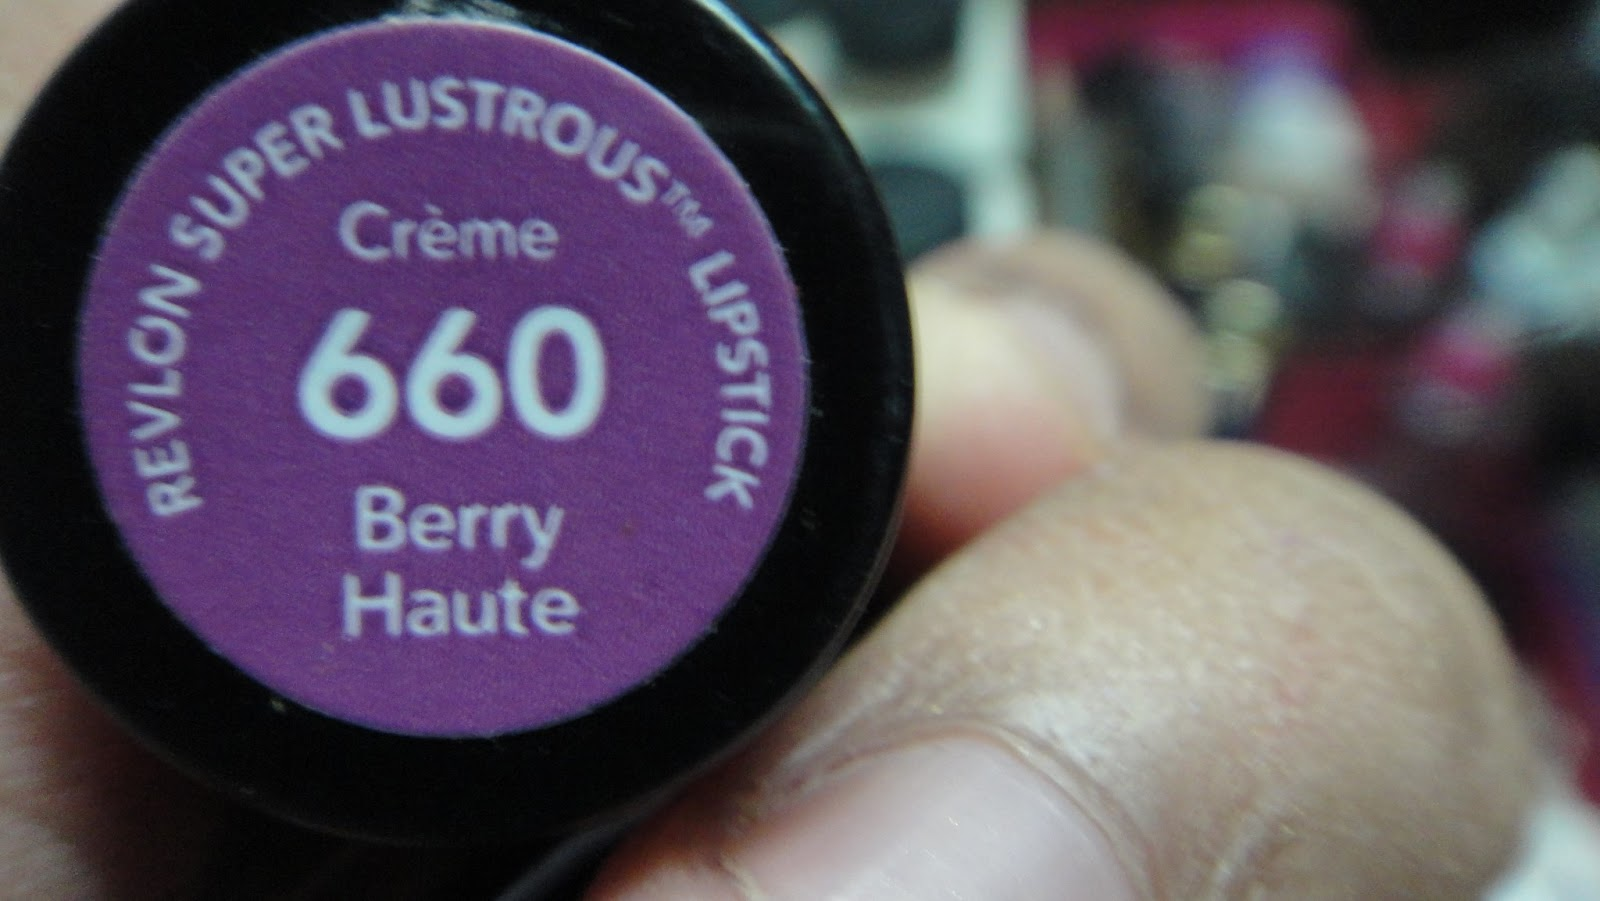 Dupe Alert: Revlon's Berry Haute Vs. LA Colors' Matte ...